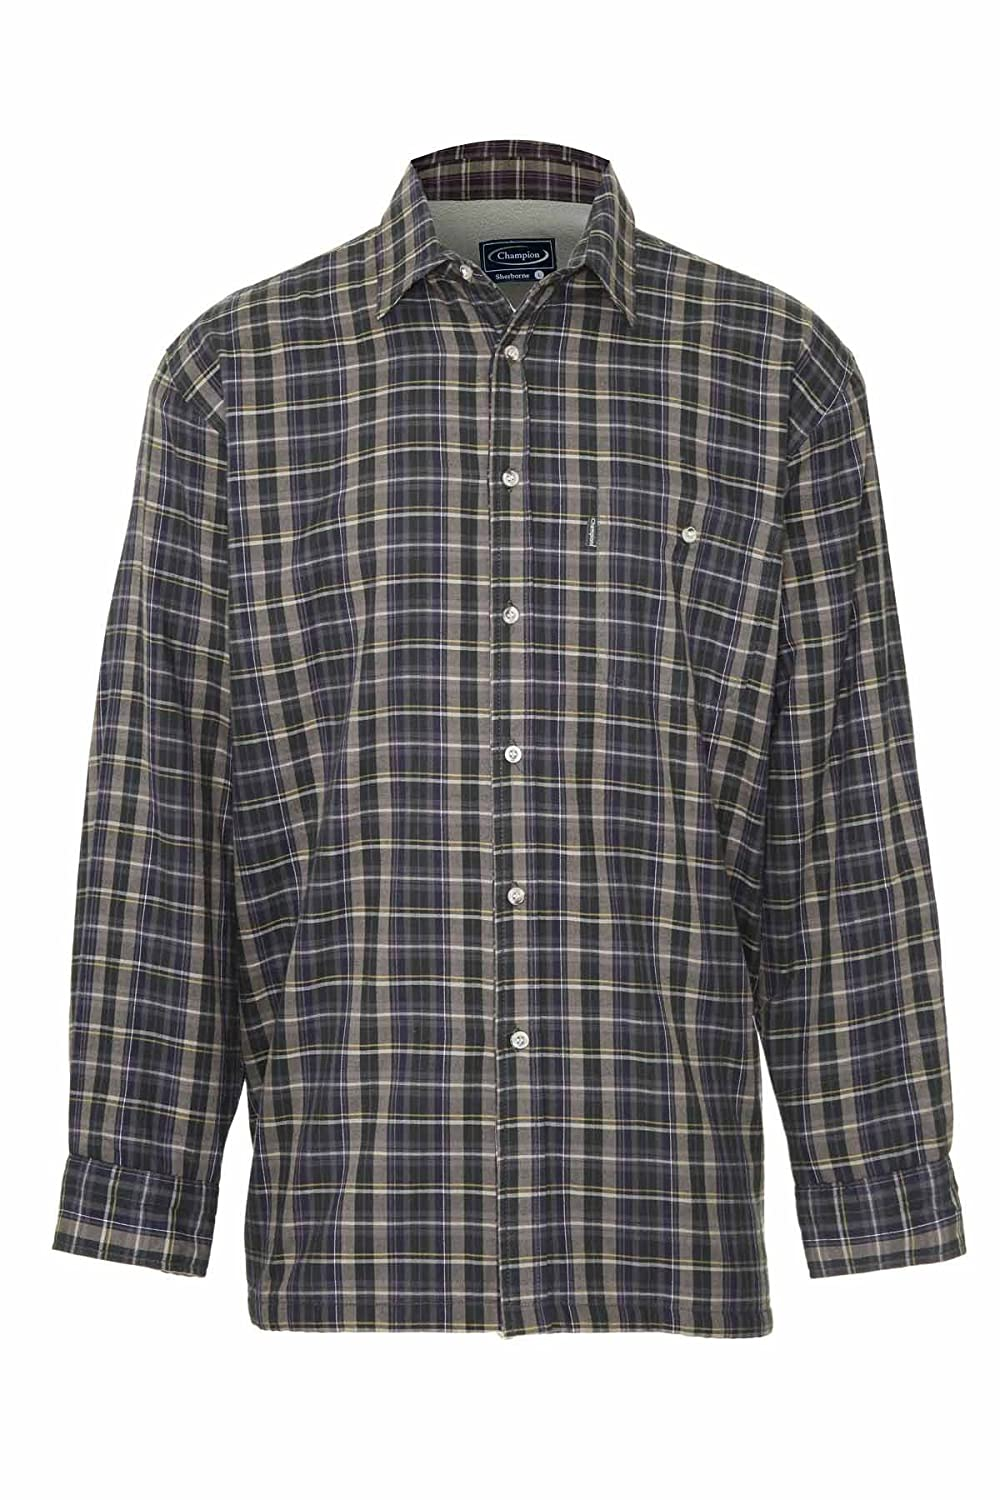 Champion Mens Sherborne Micro Fleece Lined Cotton Rich Winter Shirt